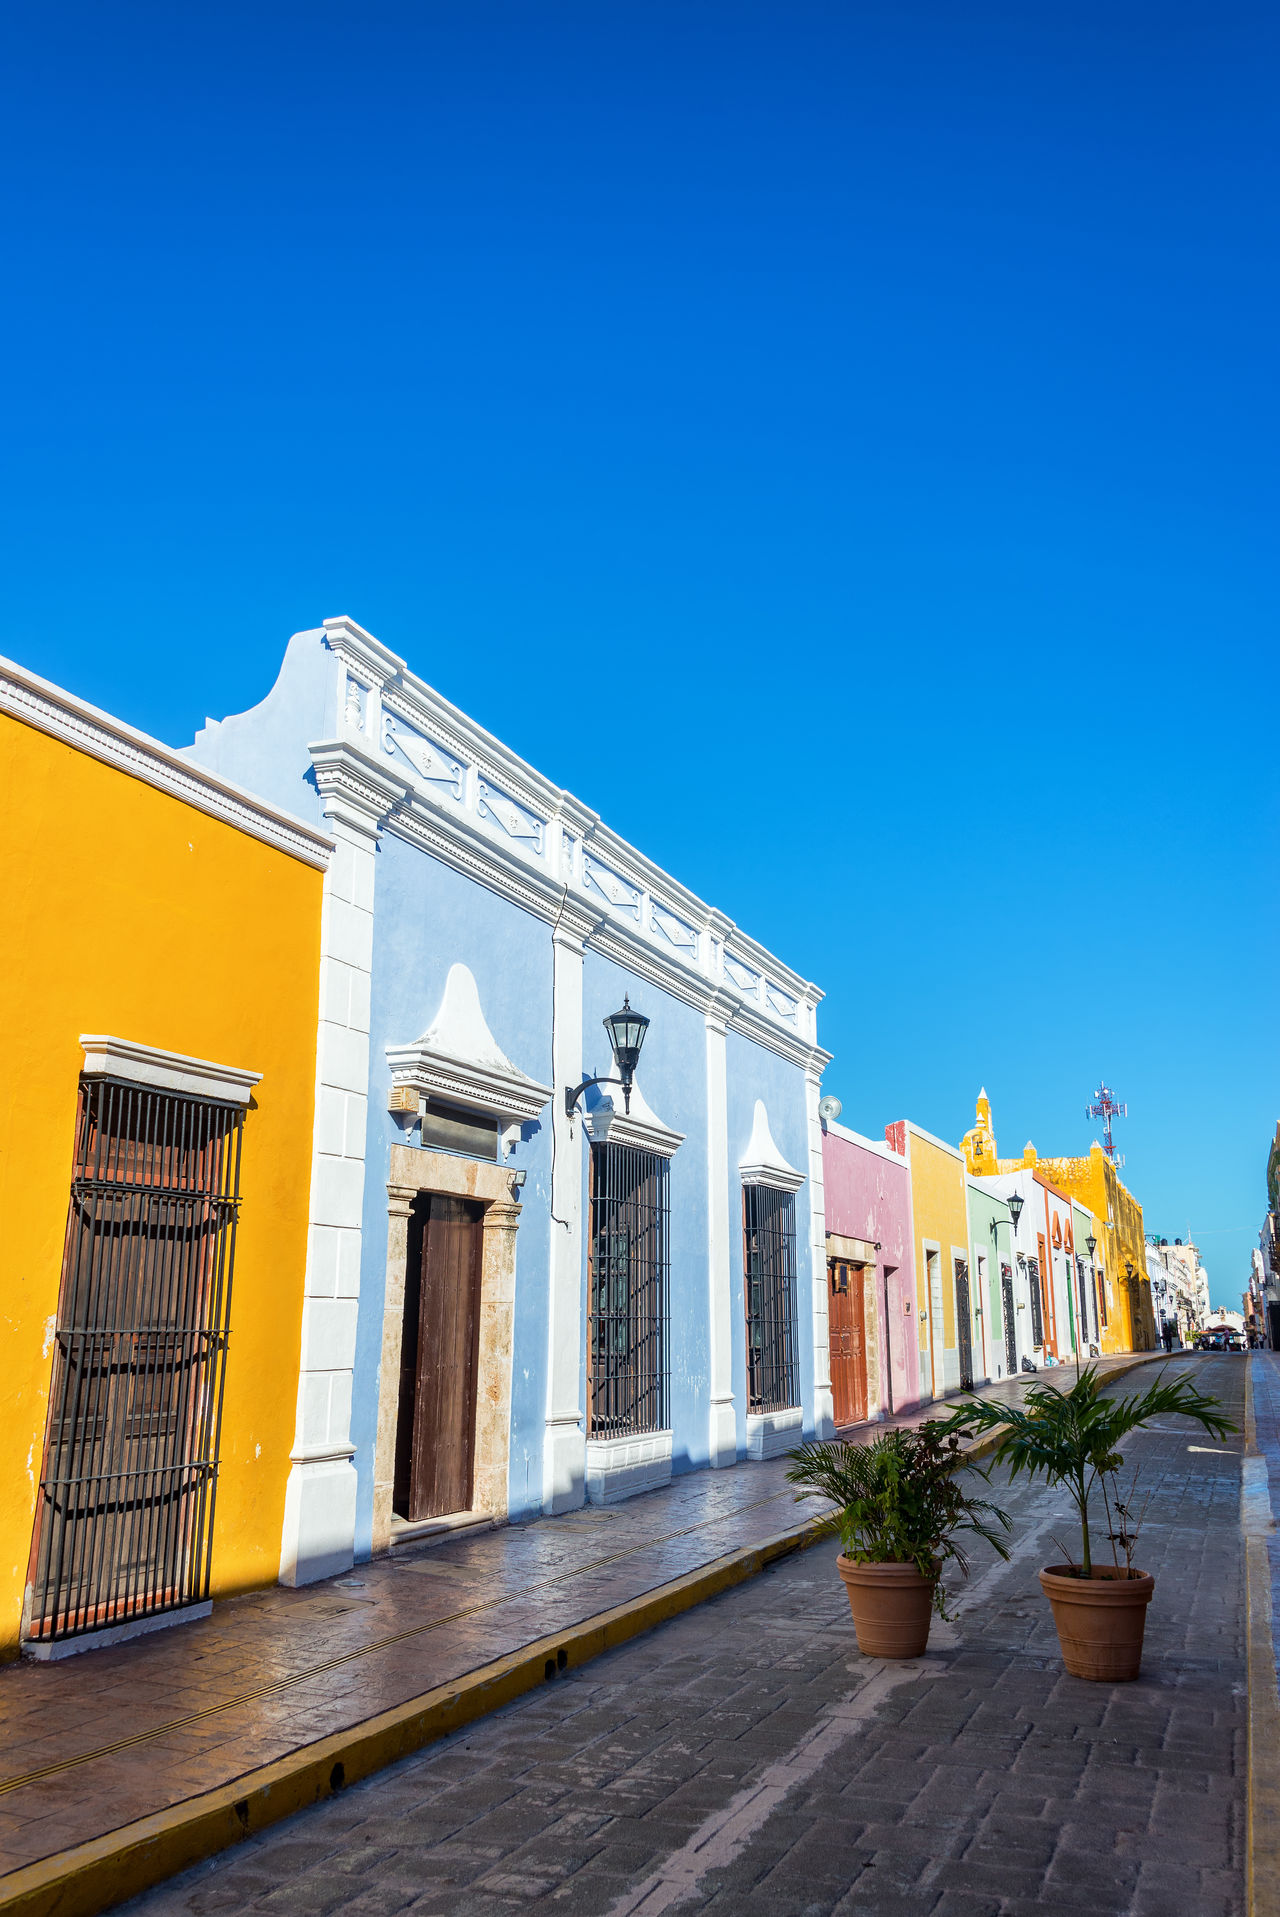 Vertical view of colorful colonial architecture in Campeche, Mexico America Architecture Building Campeche Caribbean City Cityscape Colonial Downtown Heritage Historic Houses Landmark Latin Mexican Mexico Spanish Square Street Town Unesco UNESCO World Heritage Site Urban Yucatan Mexico Yúcatan